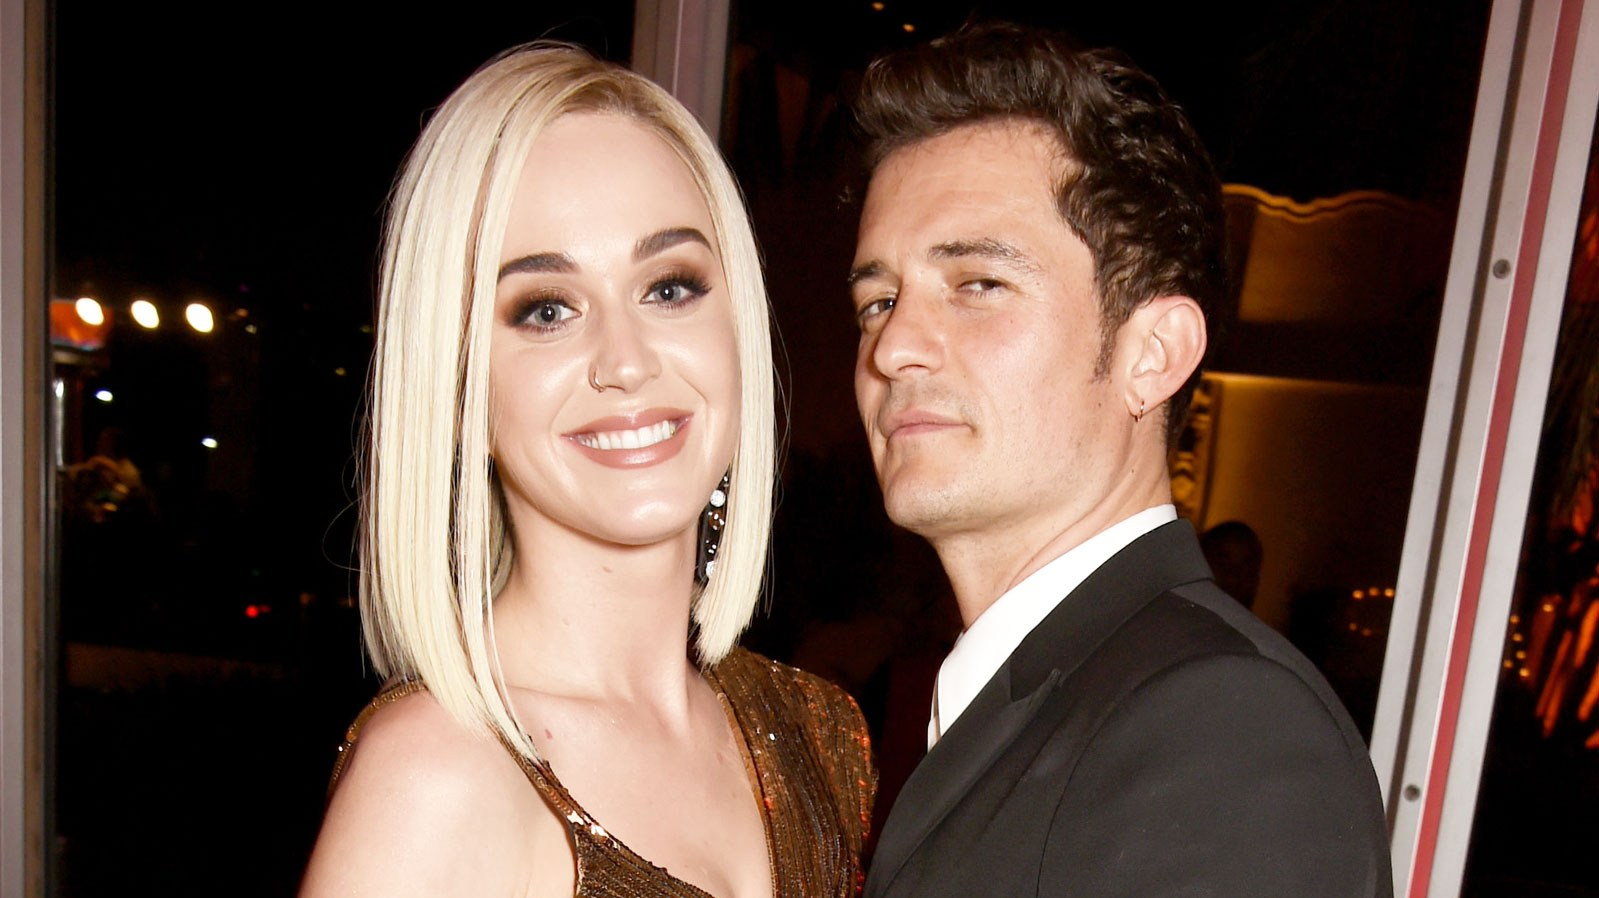 katy-perry-orlando-bloom-39669891-601b-40c6-a896-04e444339f5d